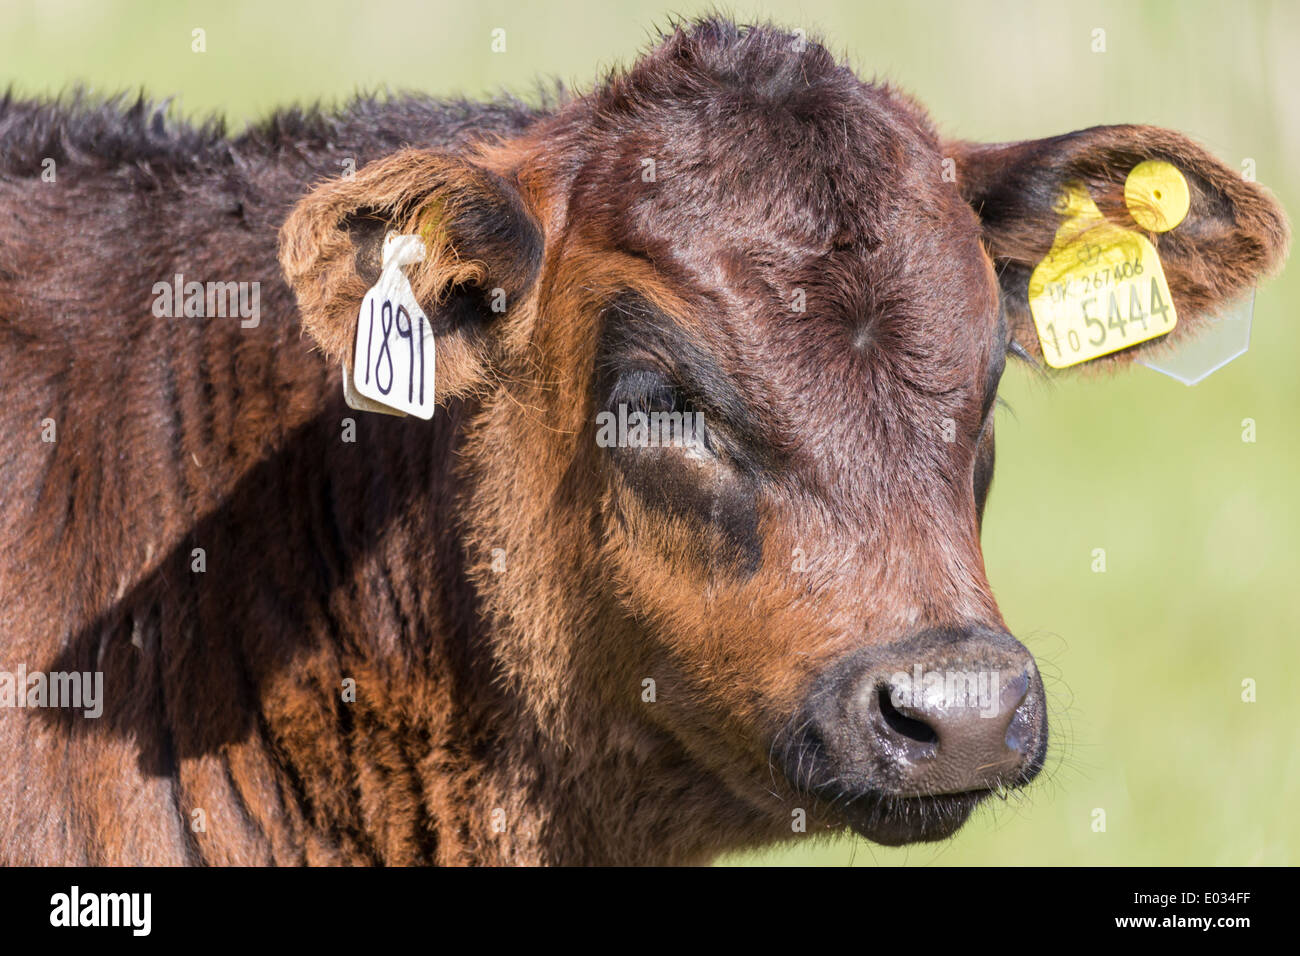 Cattle ID Identity Ear Tag Tags - Stock Image